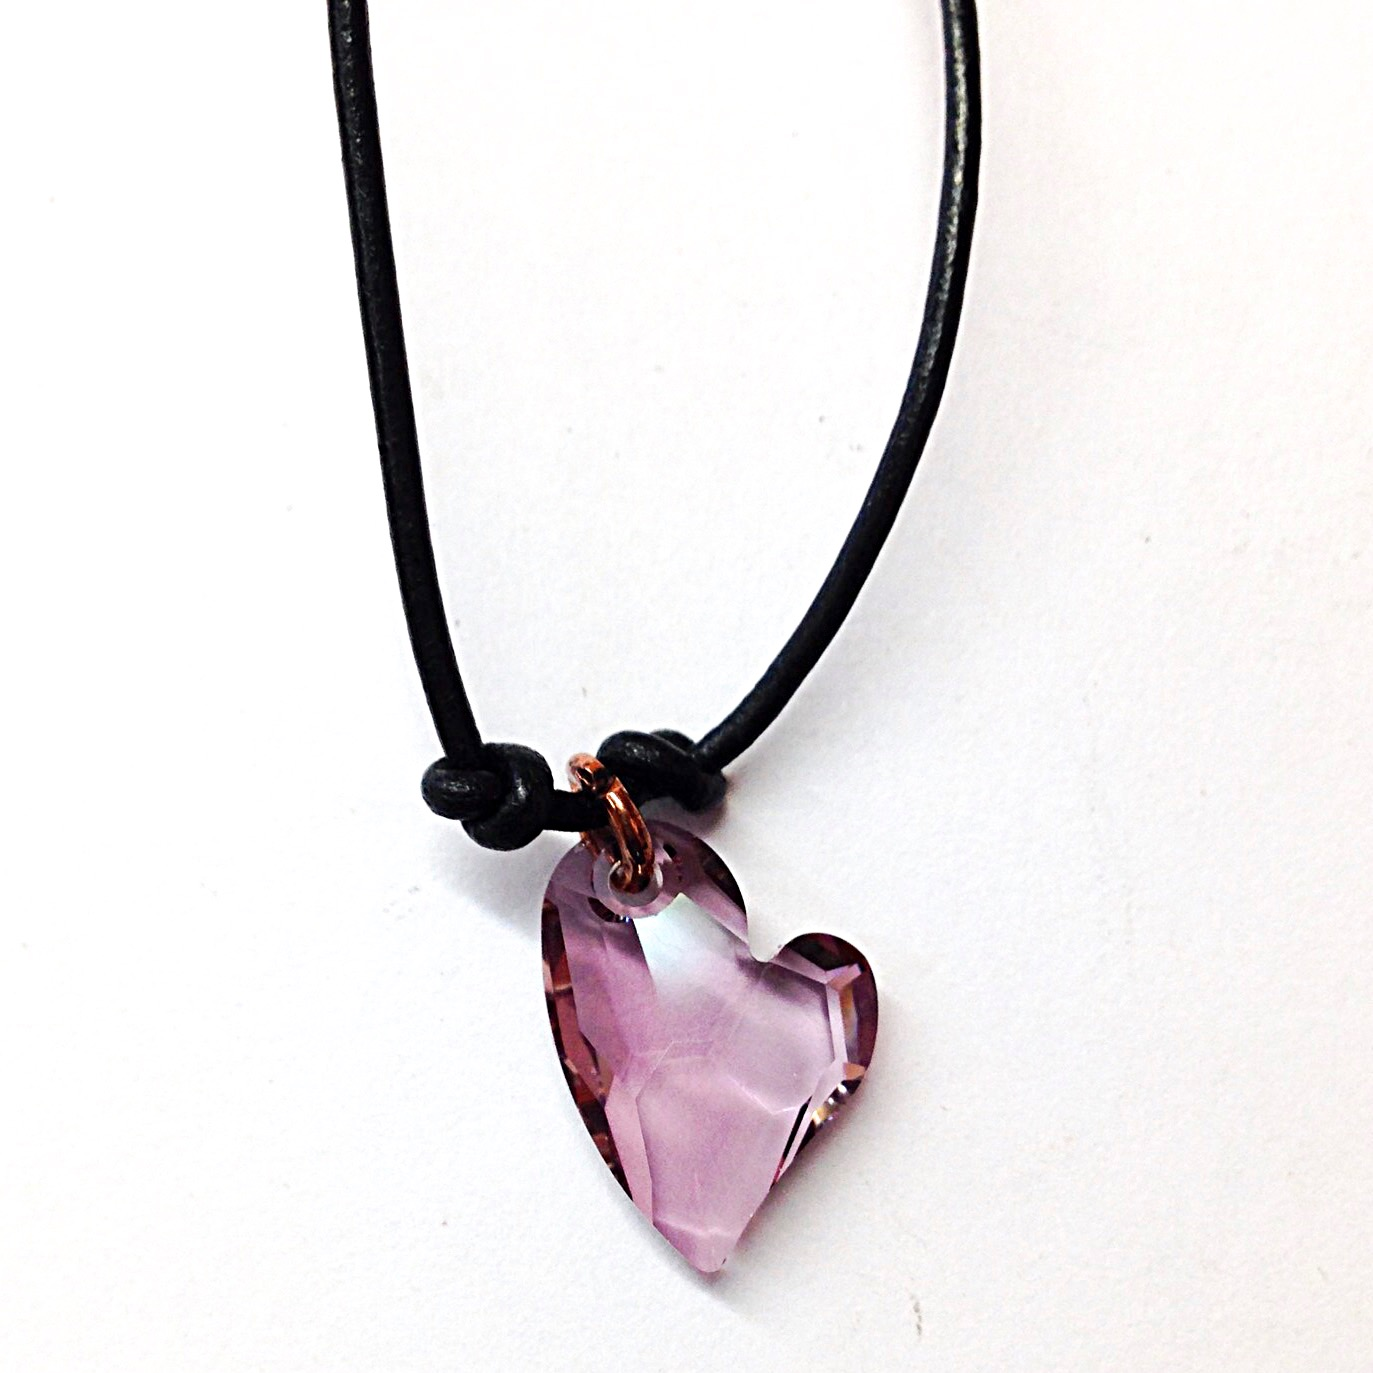 Antique pink heart necklace simple graces jewelry antique pink heart necklace purple heart pendant necklace aloadofball Gallery